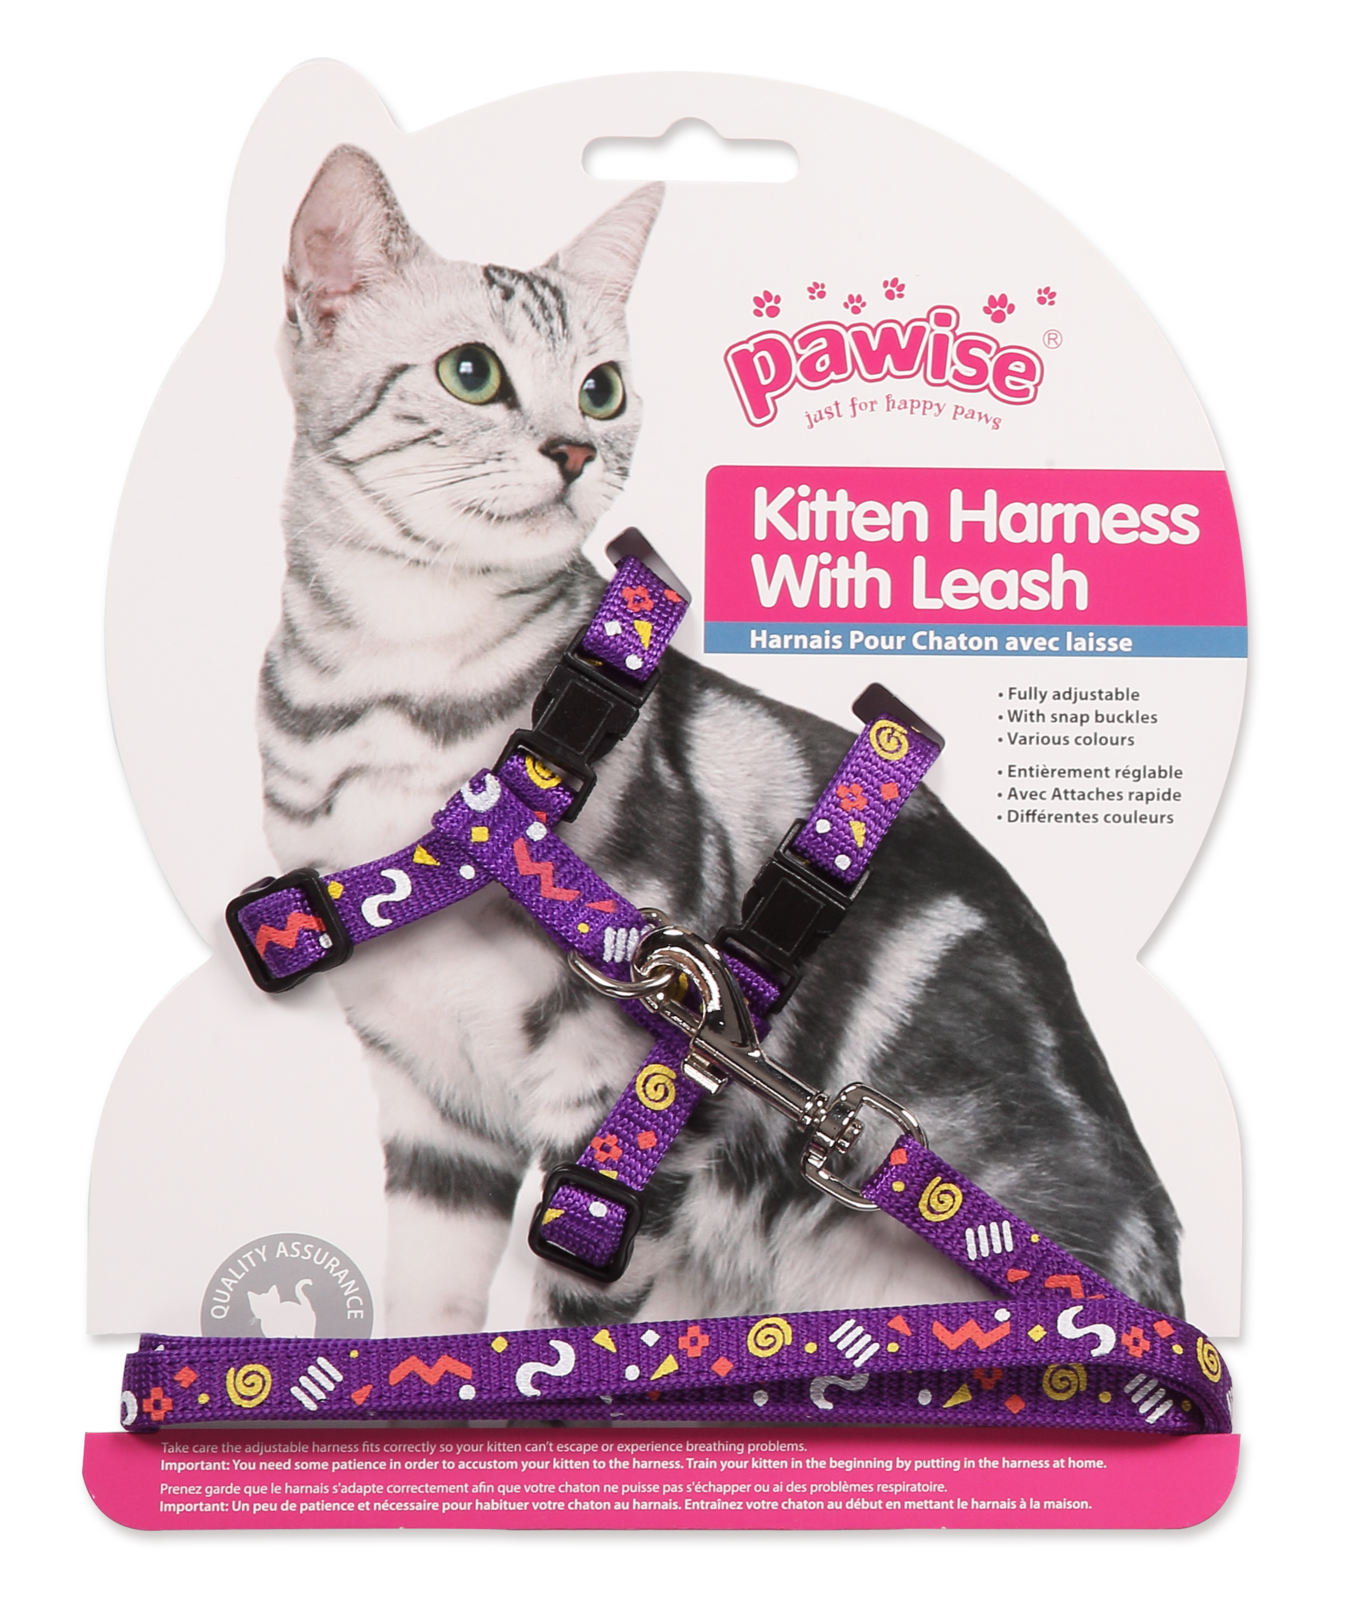 Pawise: Kitten Harness with 1.2 Leash - Pink/Purple image